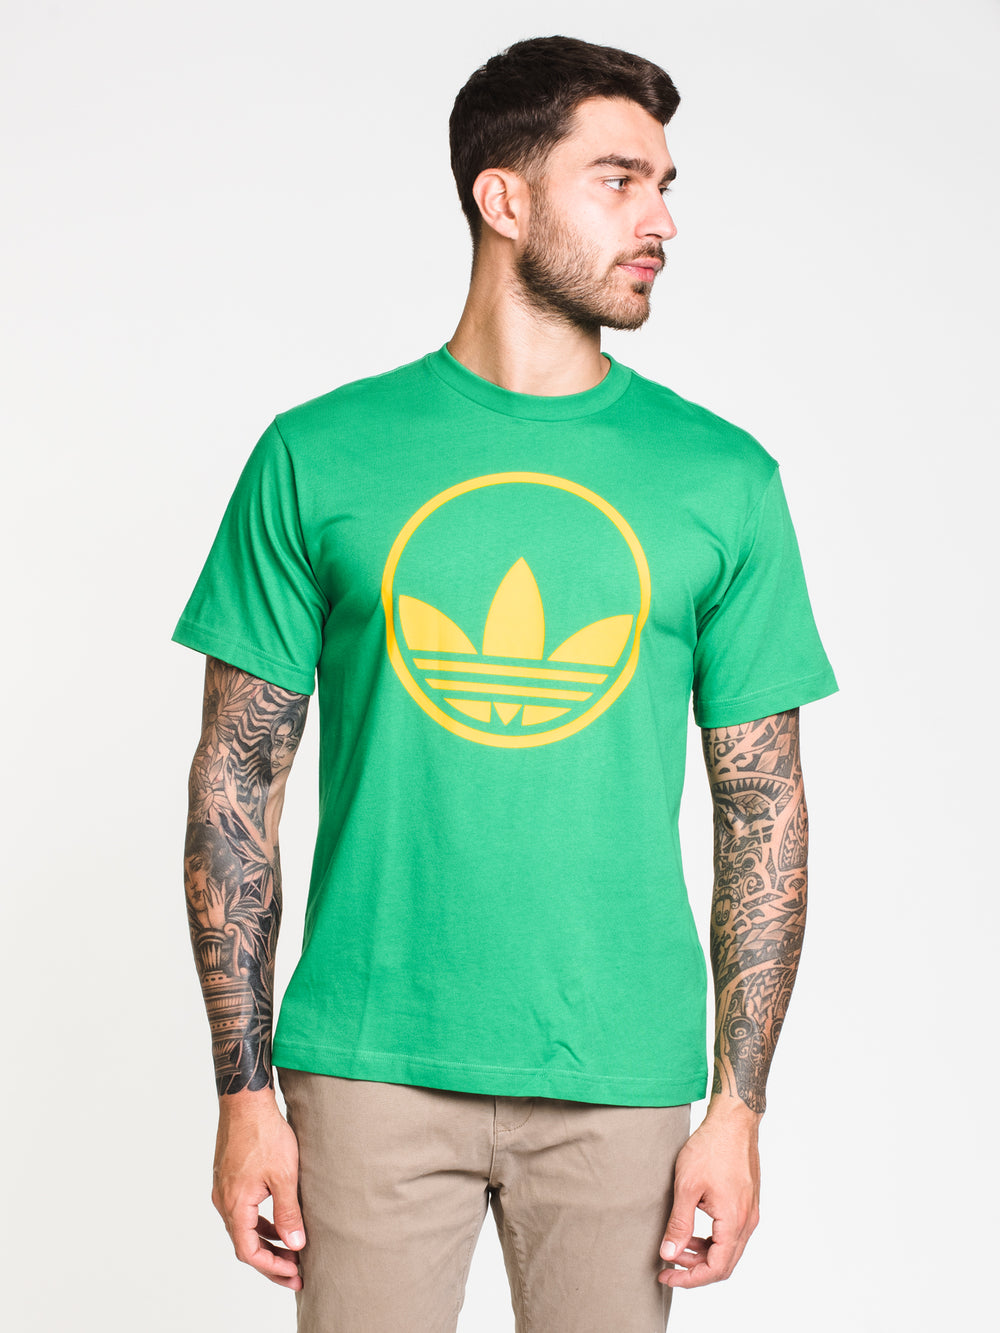 MENS CIRCLE TREFOIL SHORT SLEEVE T-SHIRT - GREEN